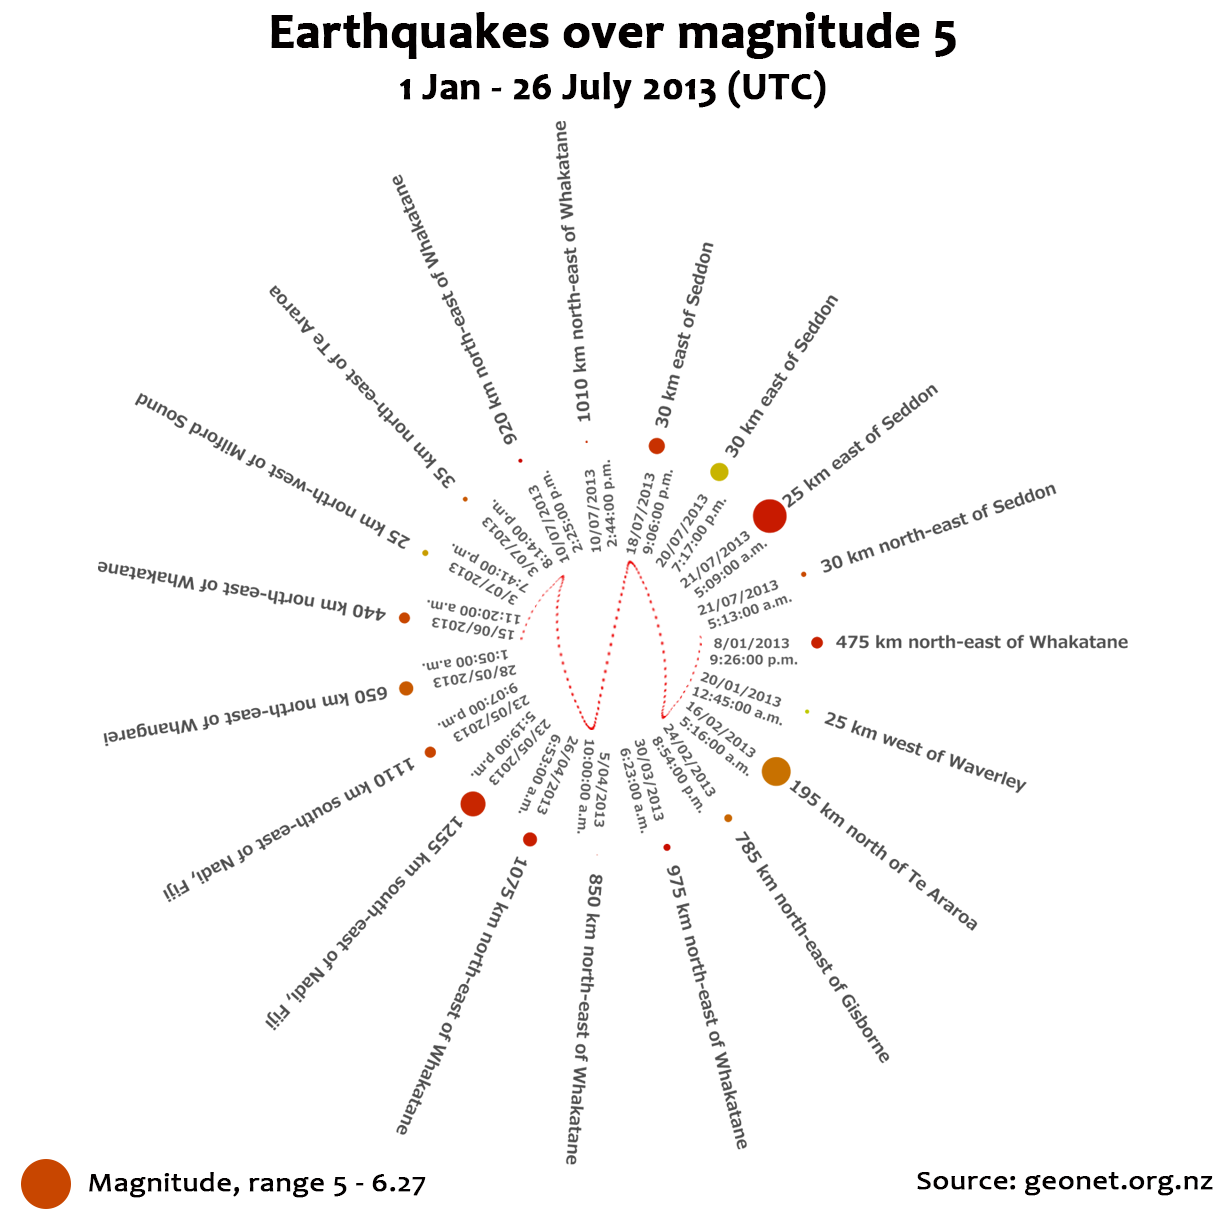 quakes over magnitude 5 this year v2